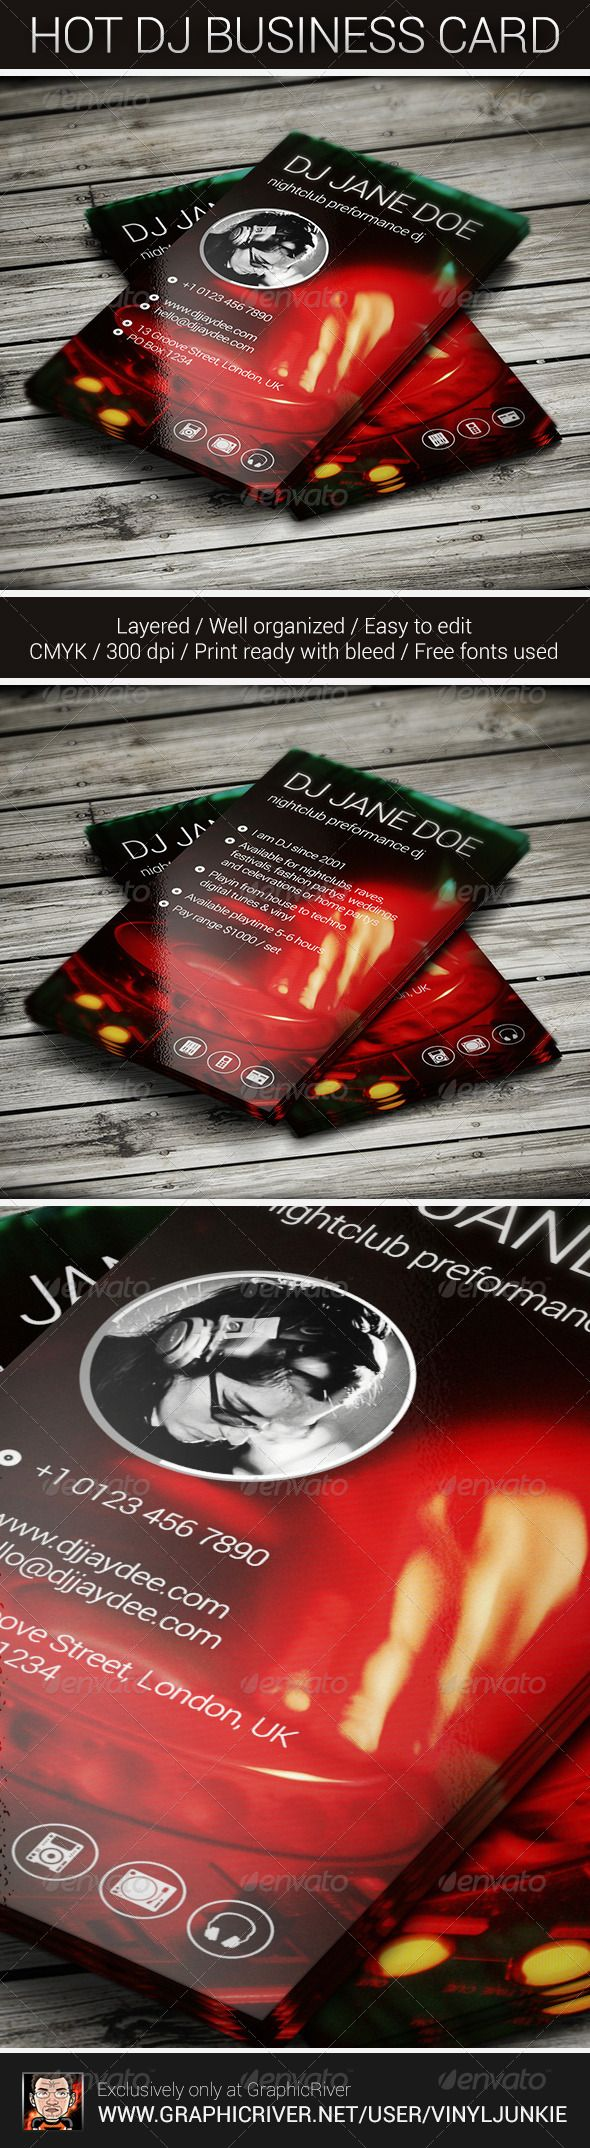 Hot DJ Business Card | Dj business cards, Business cards and Dj